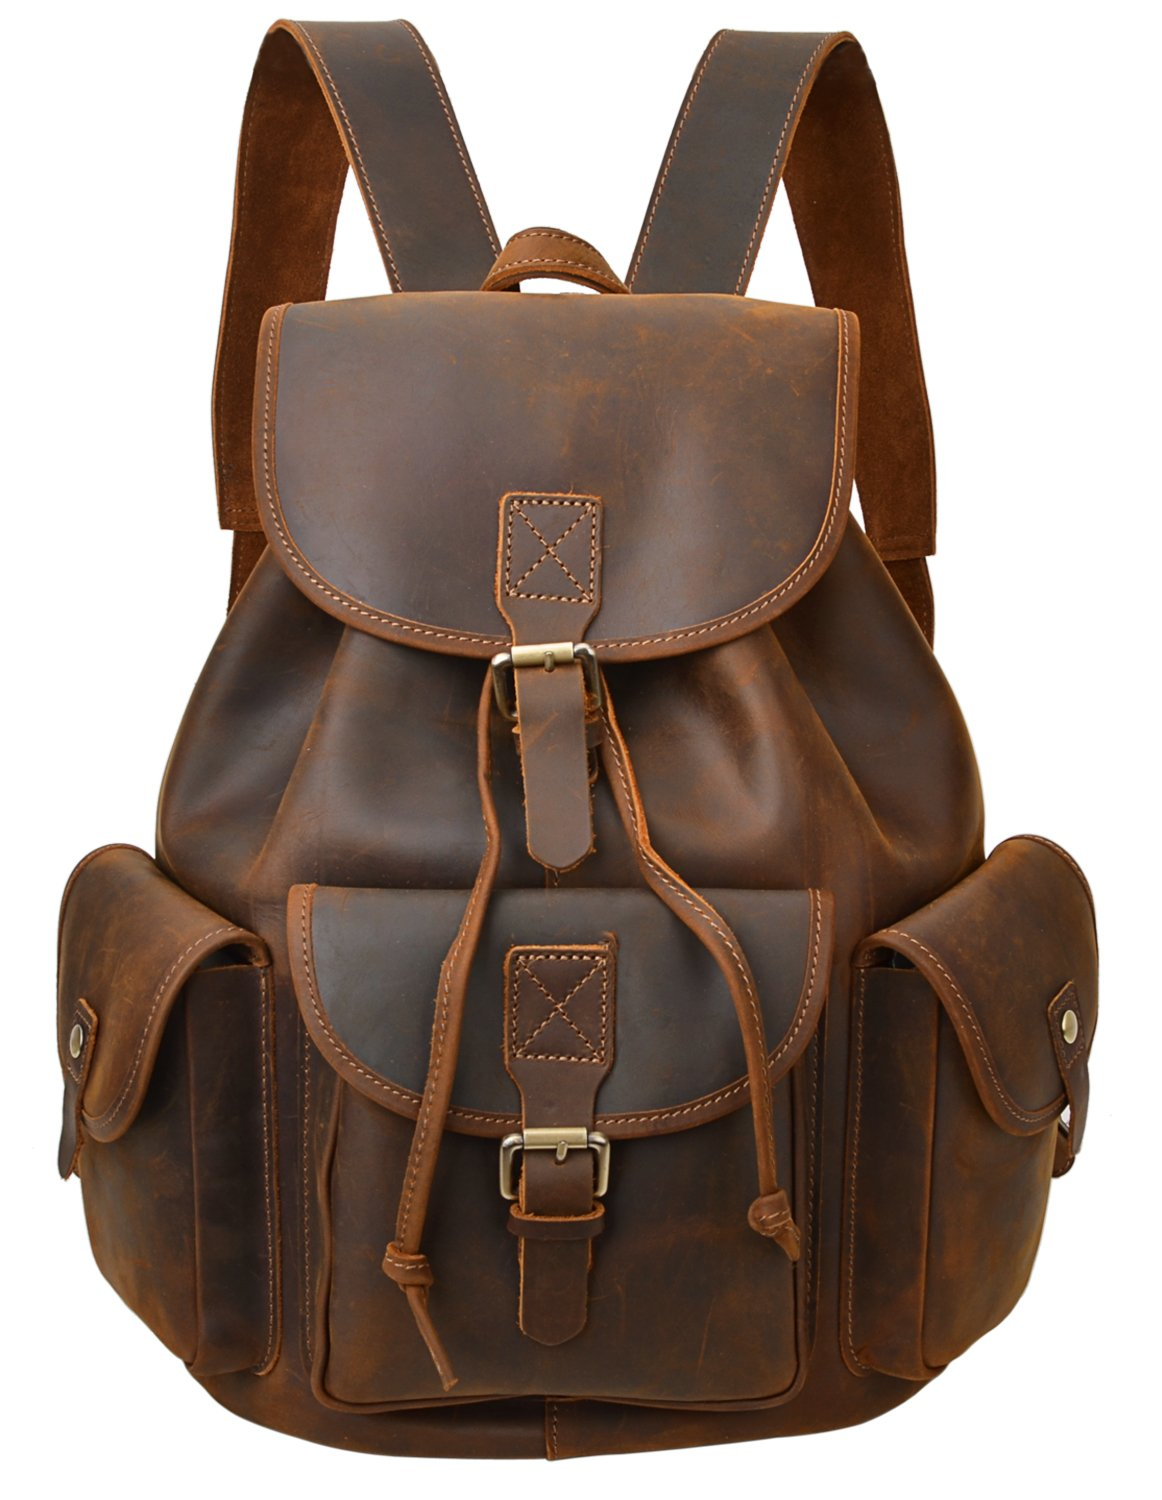 ALTOSY Crazy Horse Leather Backpack Vintage Leather Travel Rucksack College Laptop Bag 8088 (light brown) by ALTOSY